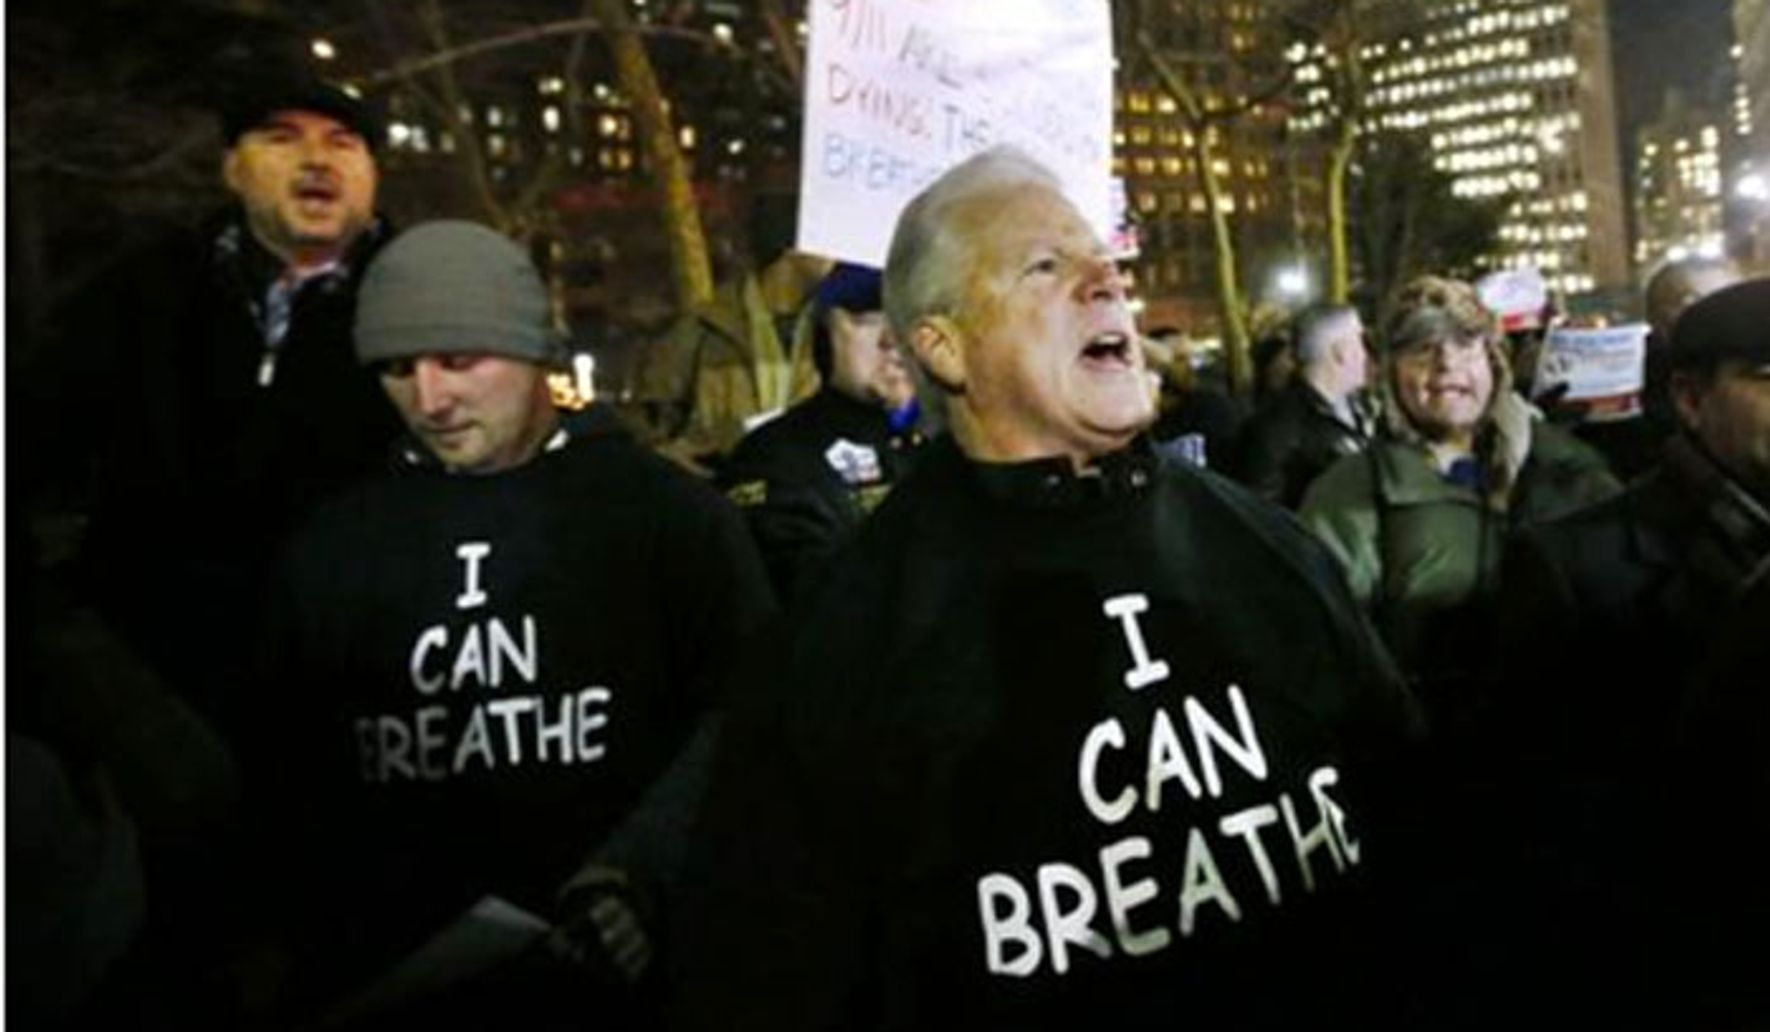 I can breathe - thanks to the NYPD' shirts flood pro-police NYC